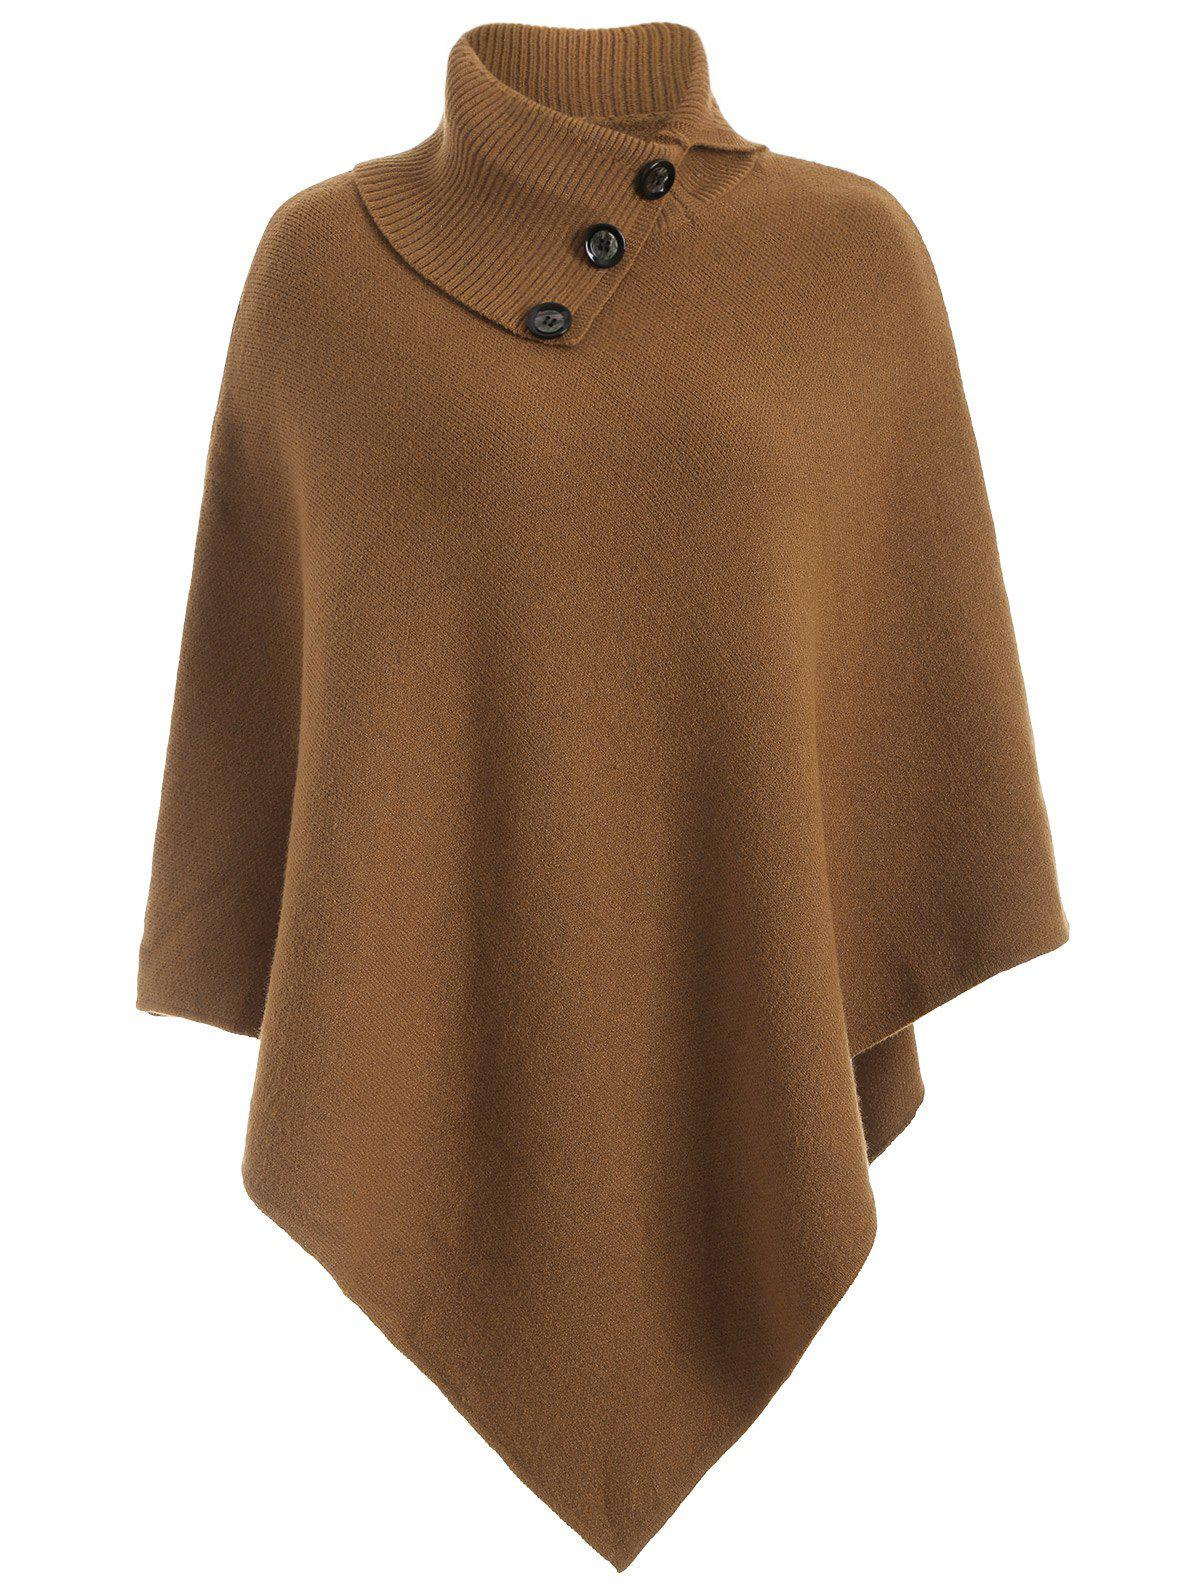 Knitted Convertible Neck Asymmetric Cape - CAMEL ONE SIZE